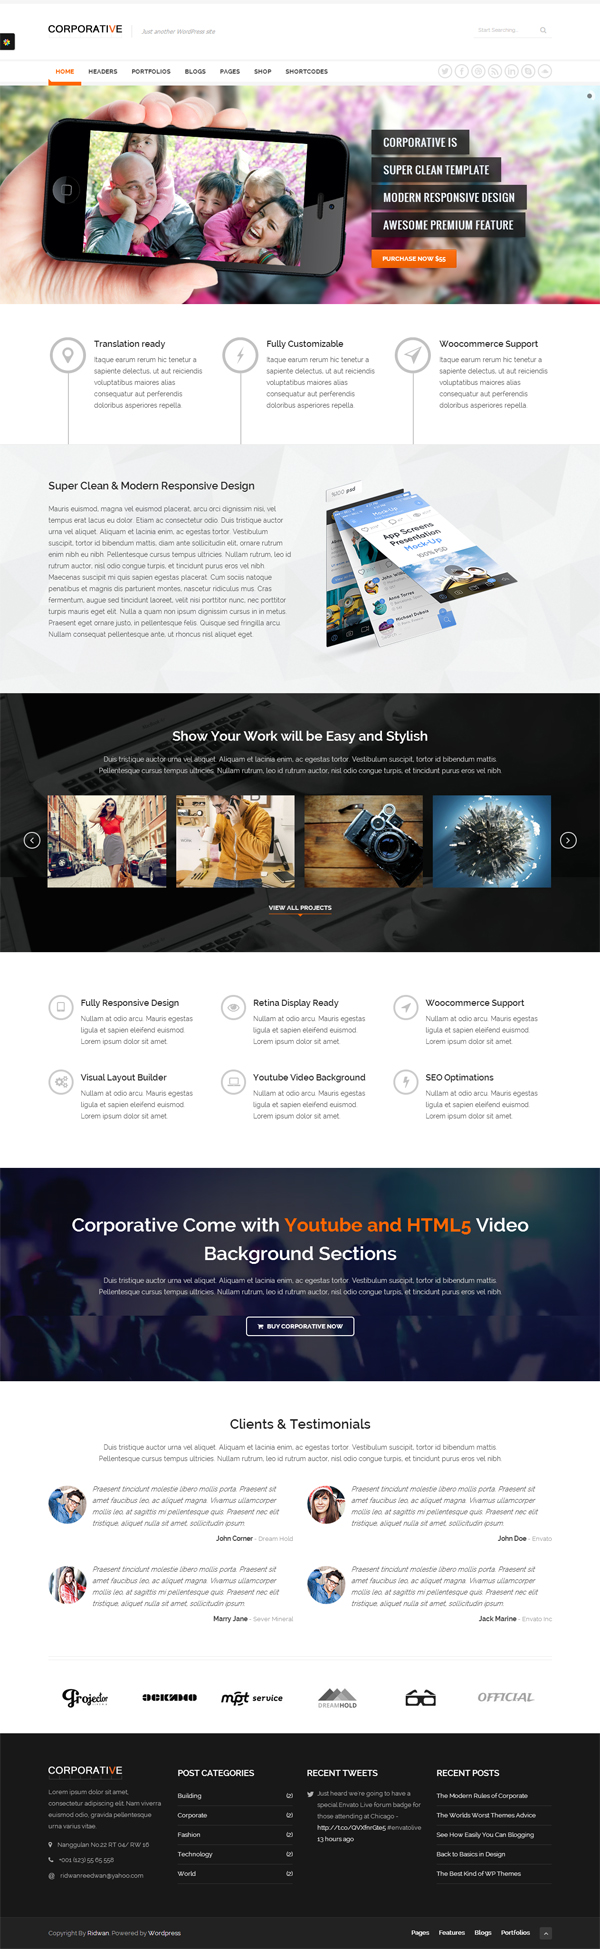 Corporative - Multipurpose WordPress Theme